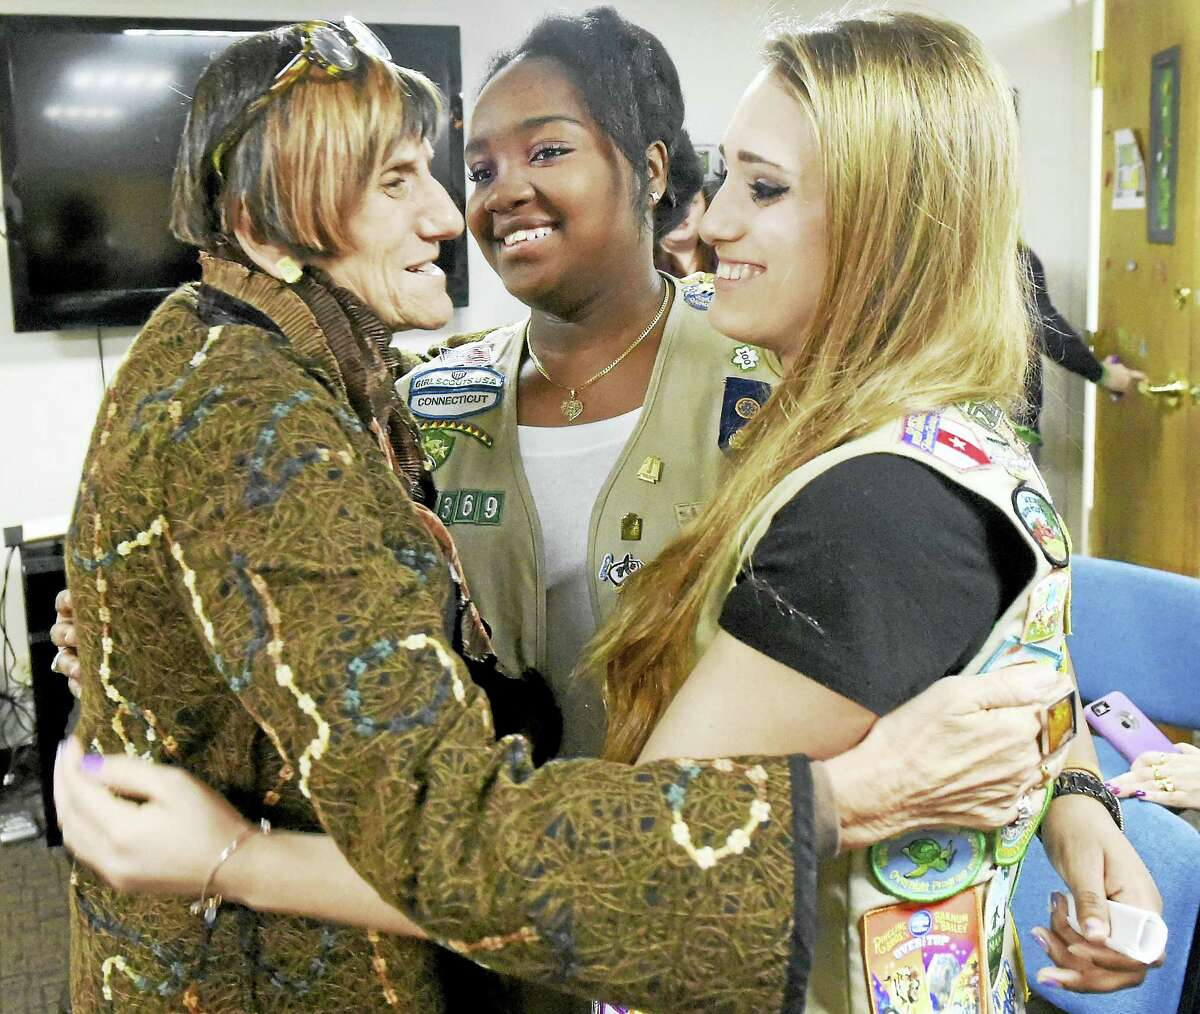 Congresswoman Rosa DeLauro (D-CT03), left, embraces Girl Scout Gold Award recipients Jenelle Grant, 17, of Milford, center, and Helen Ruckes, 17, of Orange, right, as DeLauro joined the Girl Scouts of Connecticut as the official Girl Scouts of Connecticut spokesperson for the Gold Award on January 19, 2016 in their North Haven headquarters to kickoff the 100th Anniversary of the Girl Scout Gold Award nationwide.